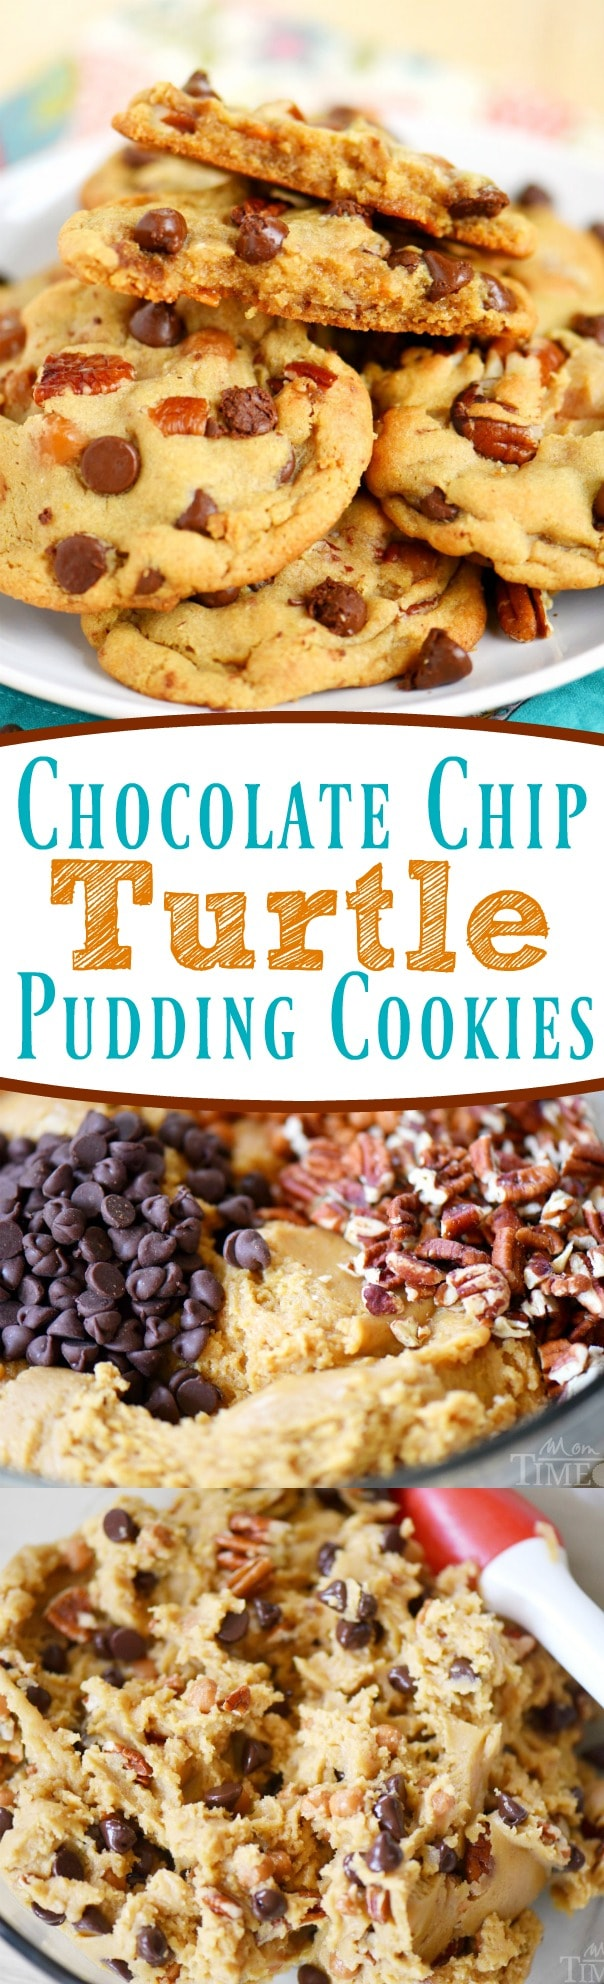 chocolate-chip-turtle-pudding-cookies